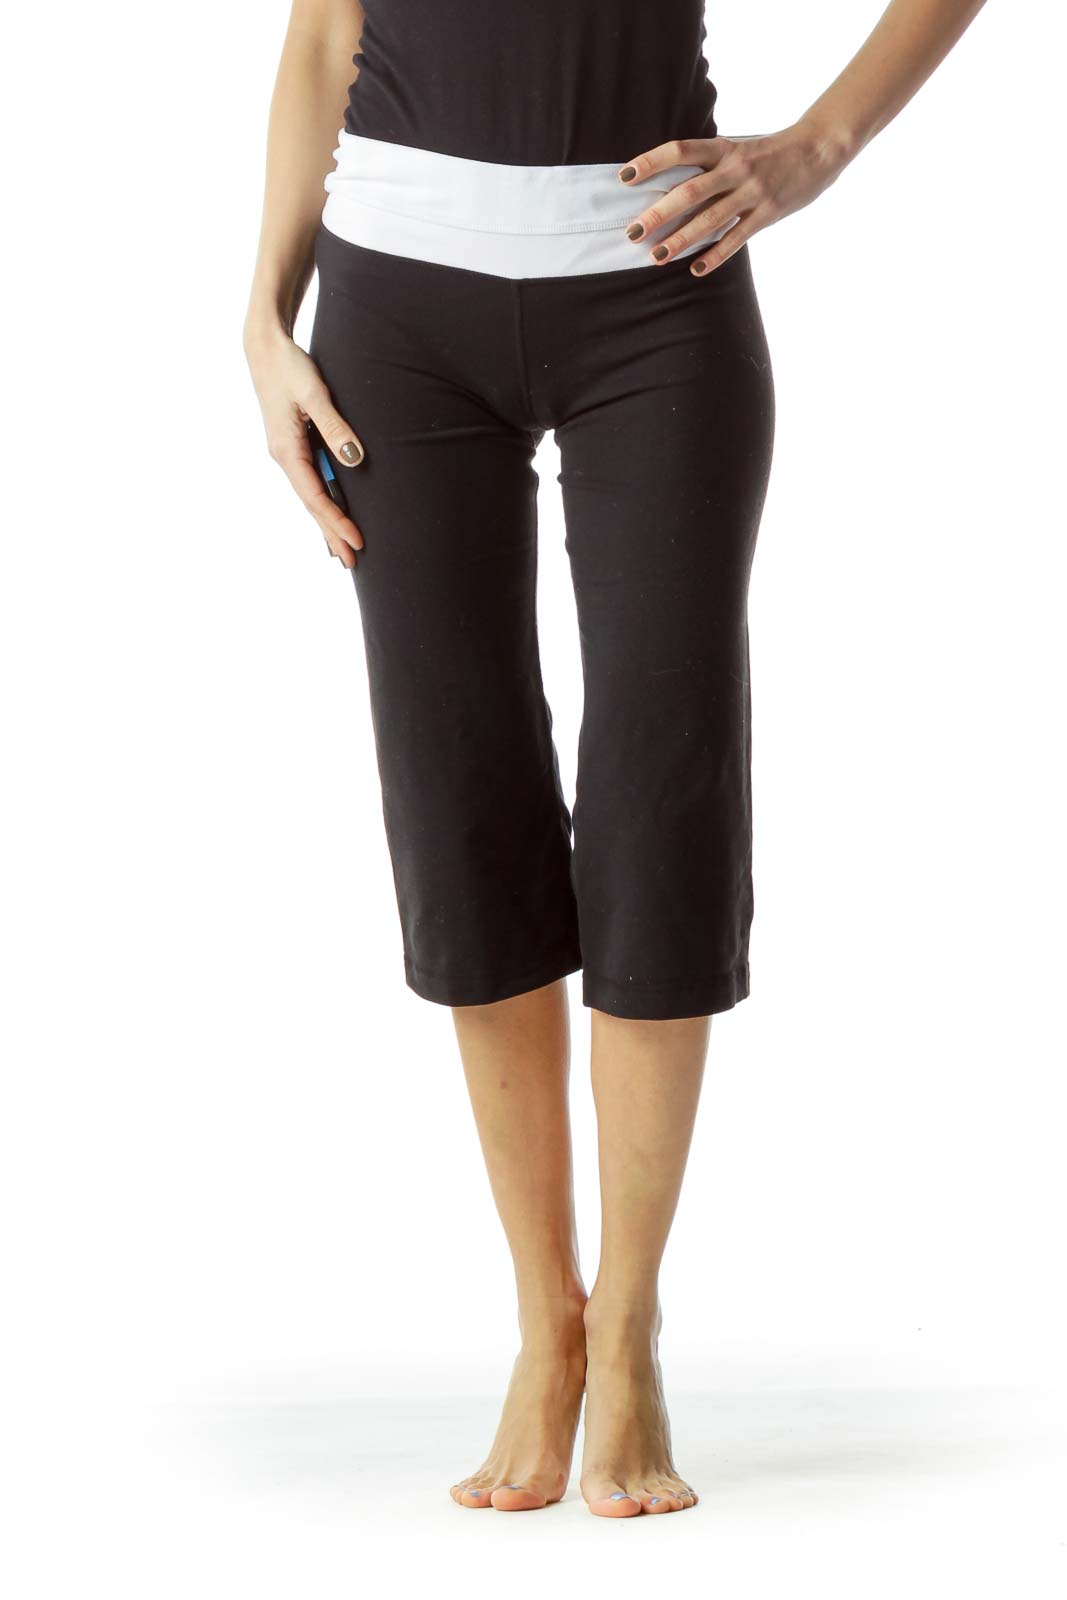 Black Stretchy Capri Yoga pants